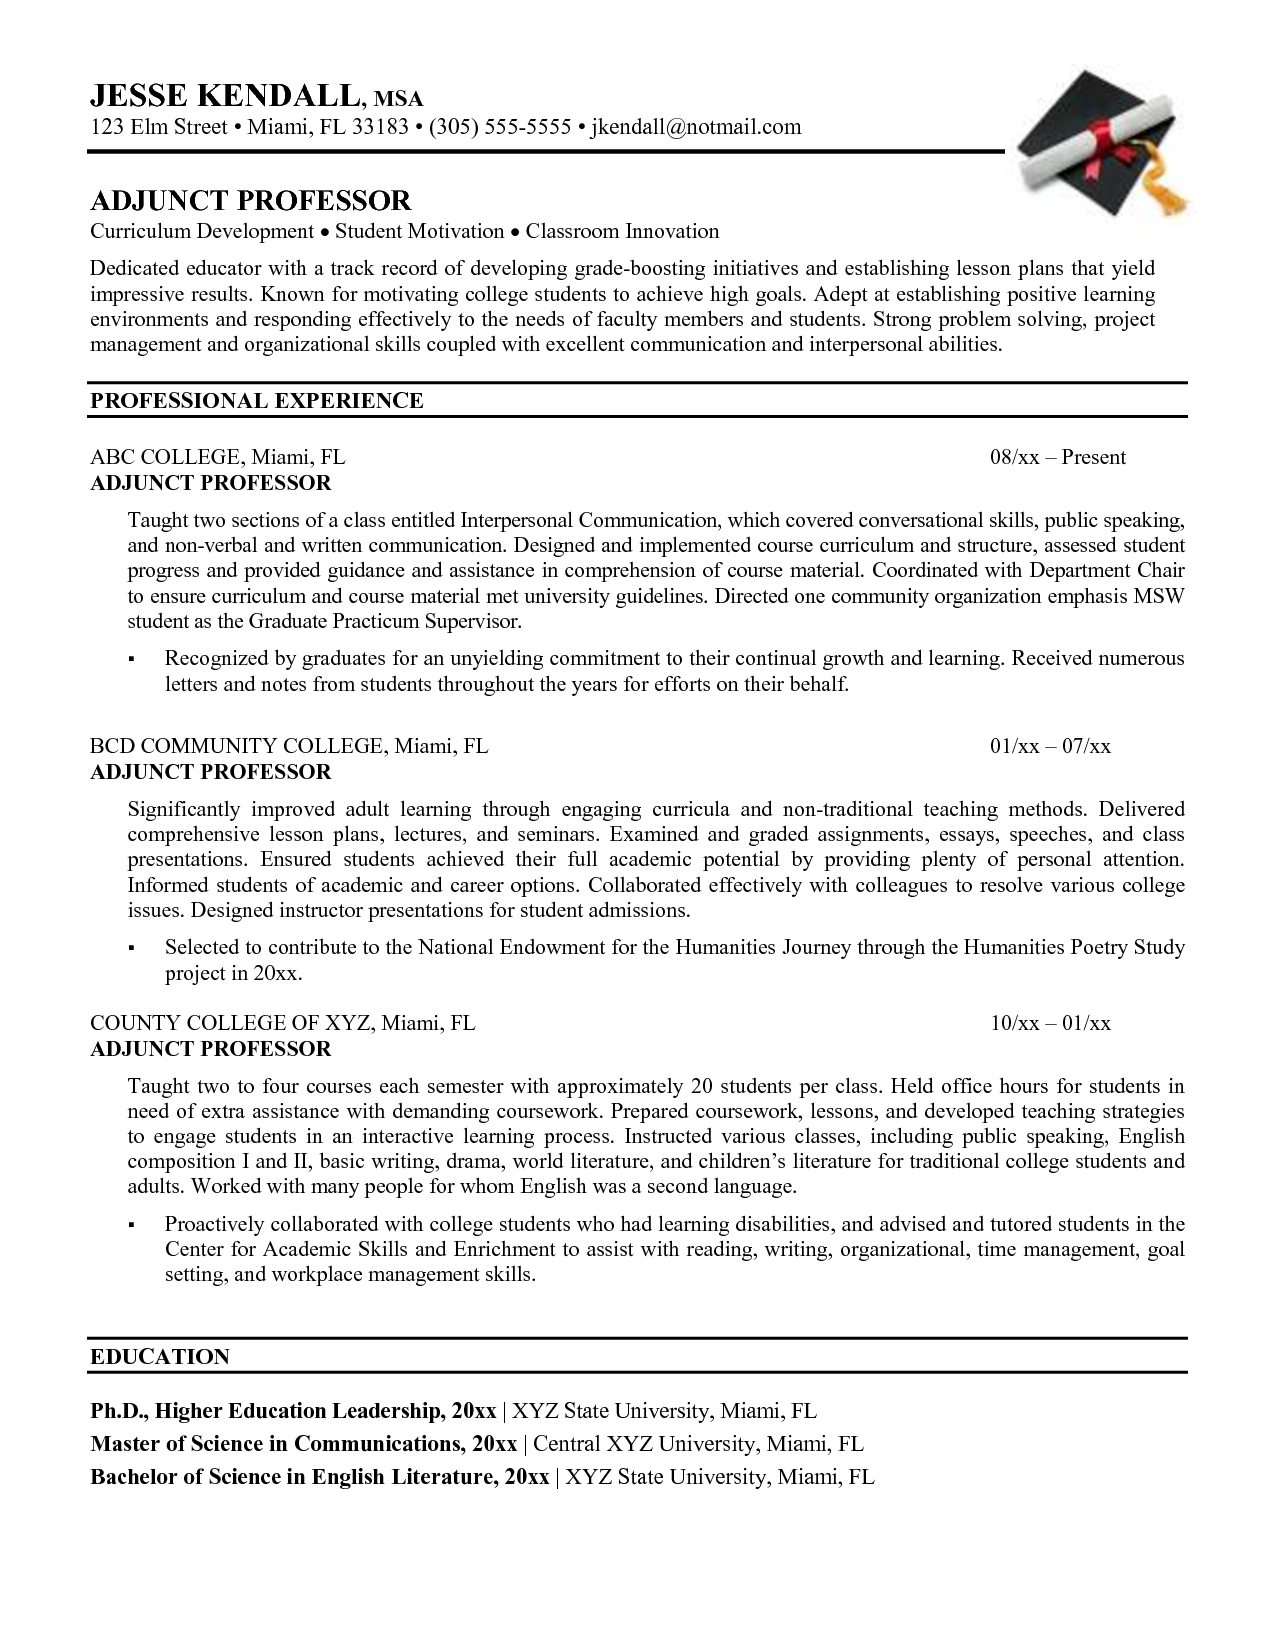 sample resume for faculty position engineering Adjunct Professor Resume |  Best Template Collection